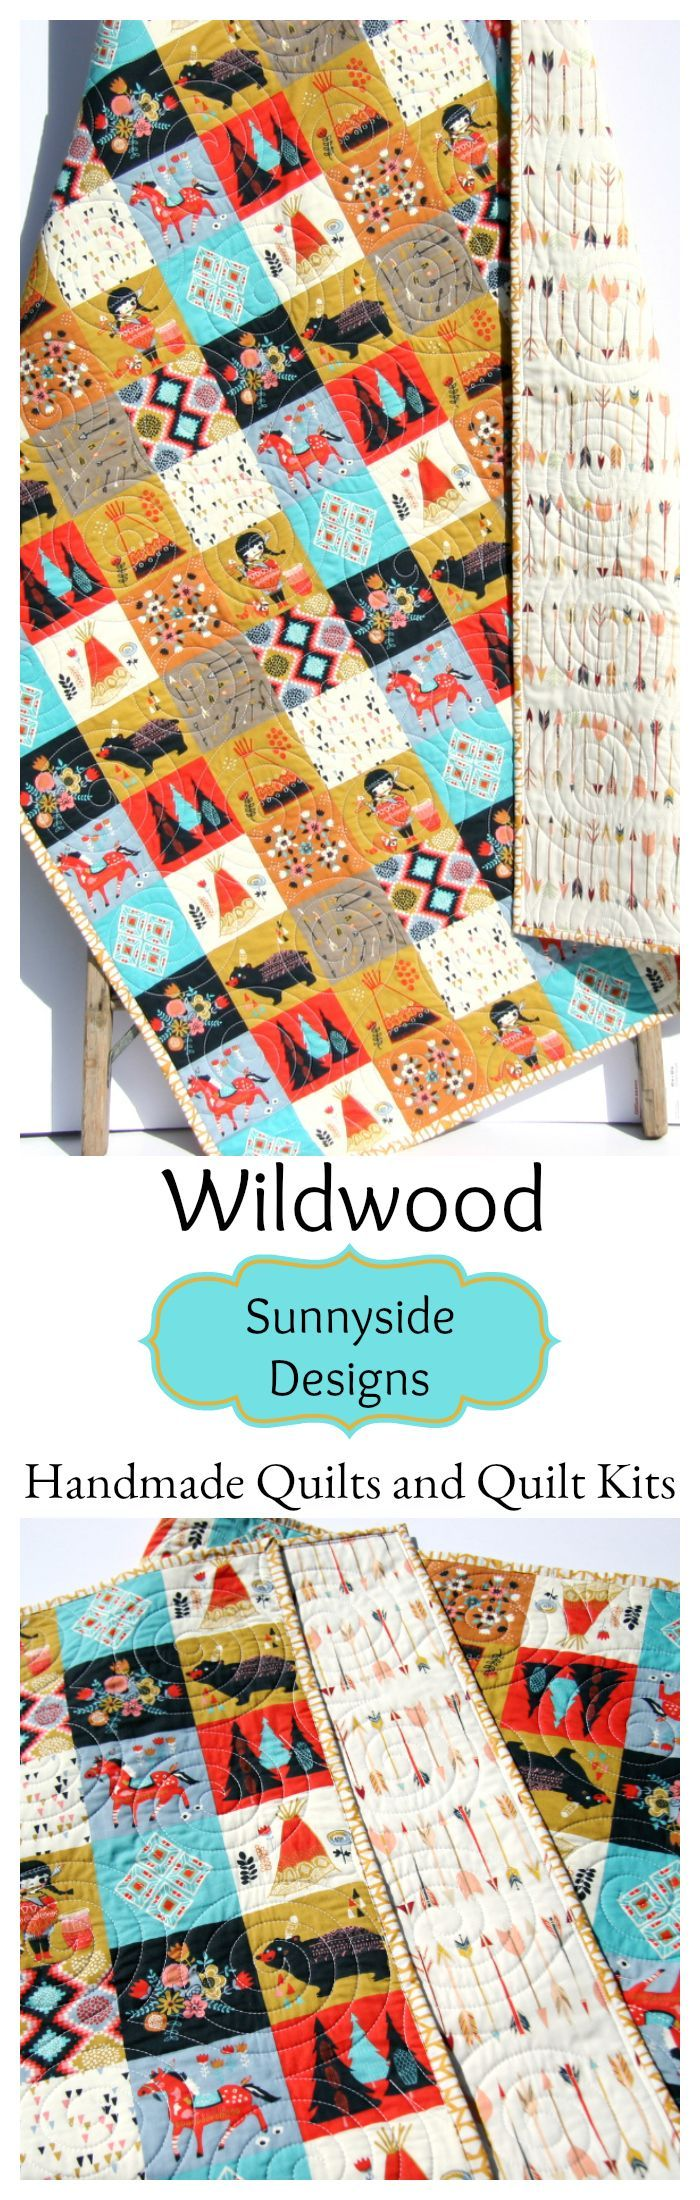 Baby Quilt Kit for Beginners, Panel Patchwork Quilt Kit, Easy Baby Quilt Kit, Wildwood Birch Organic Fabrics, Aztec Indian Girl Teepee Arrows Arrows Gender Neutral Tepee Boy or Girl Baby Bedding Nursery Decor Ideas, Handmade Baby Quilt Toddler Bed Quilt, Quilts for Sale by Sunnyside Designs